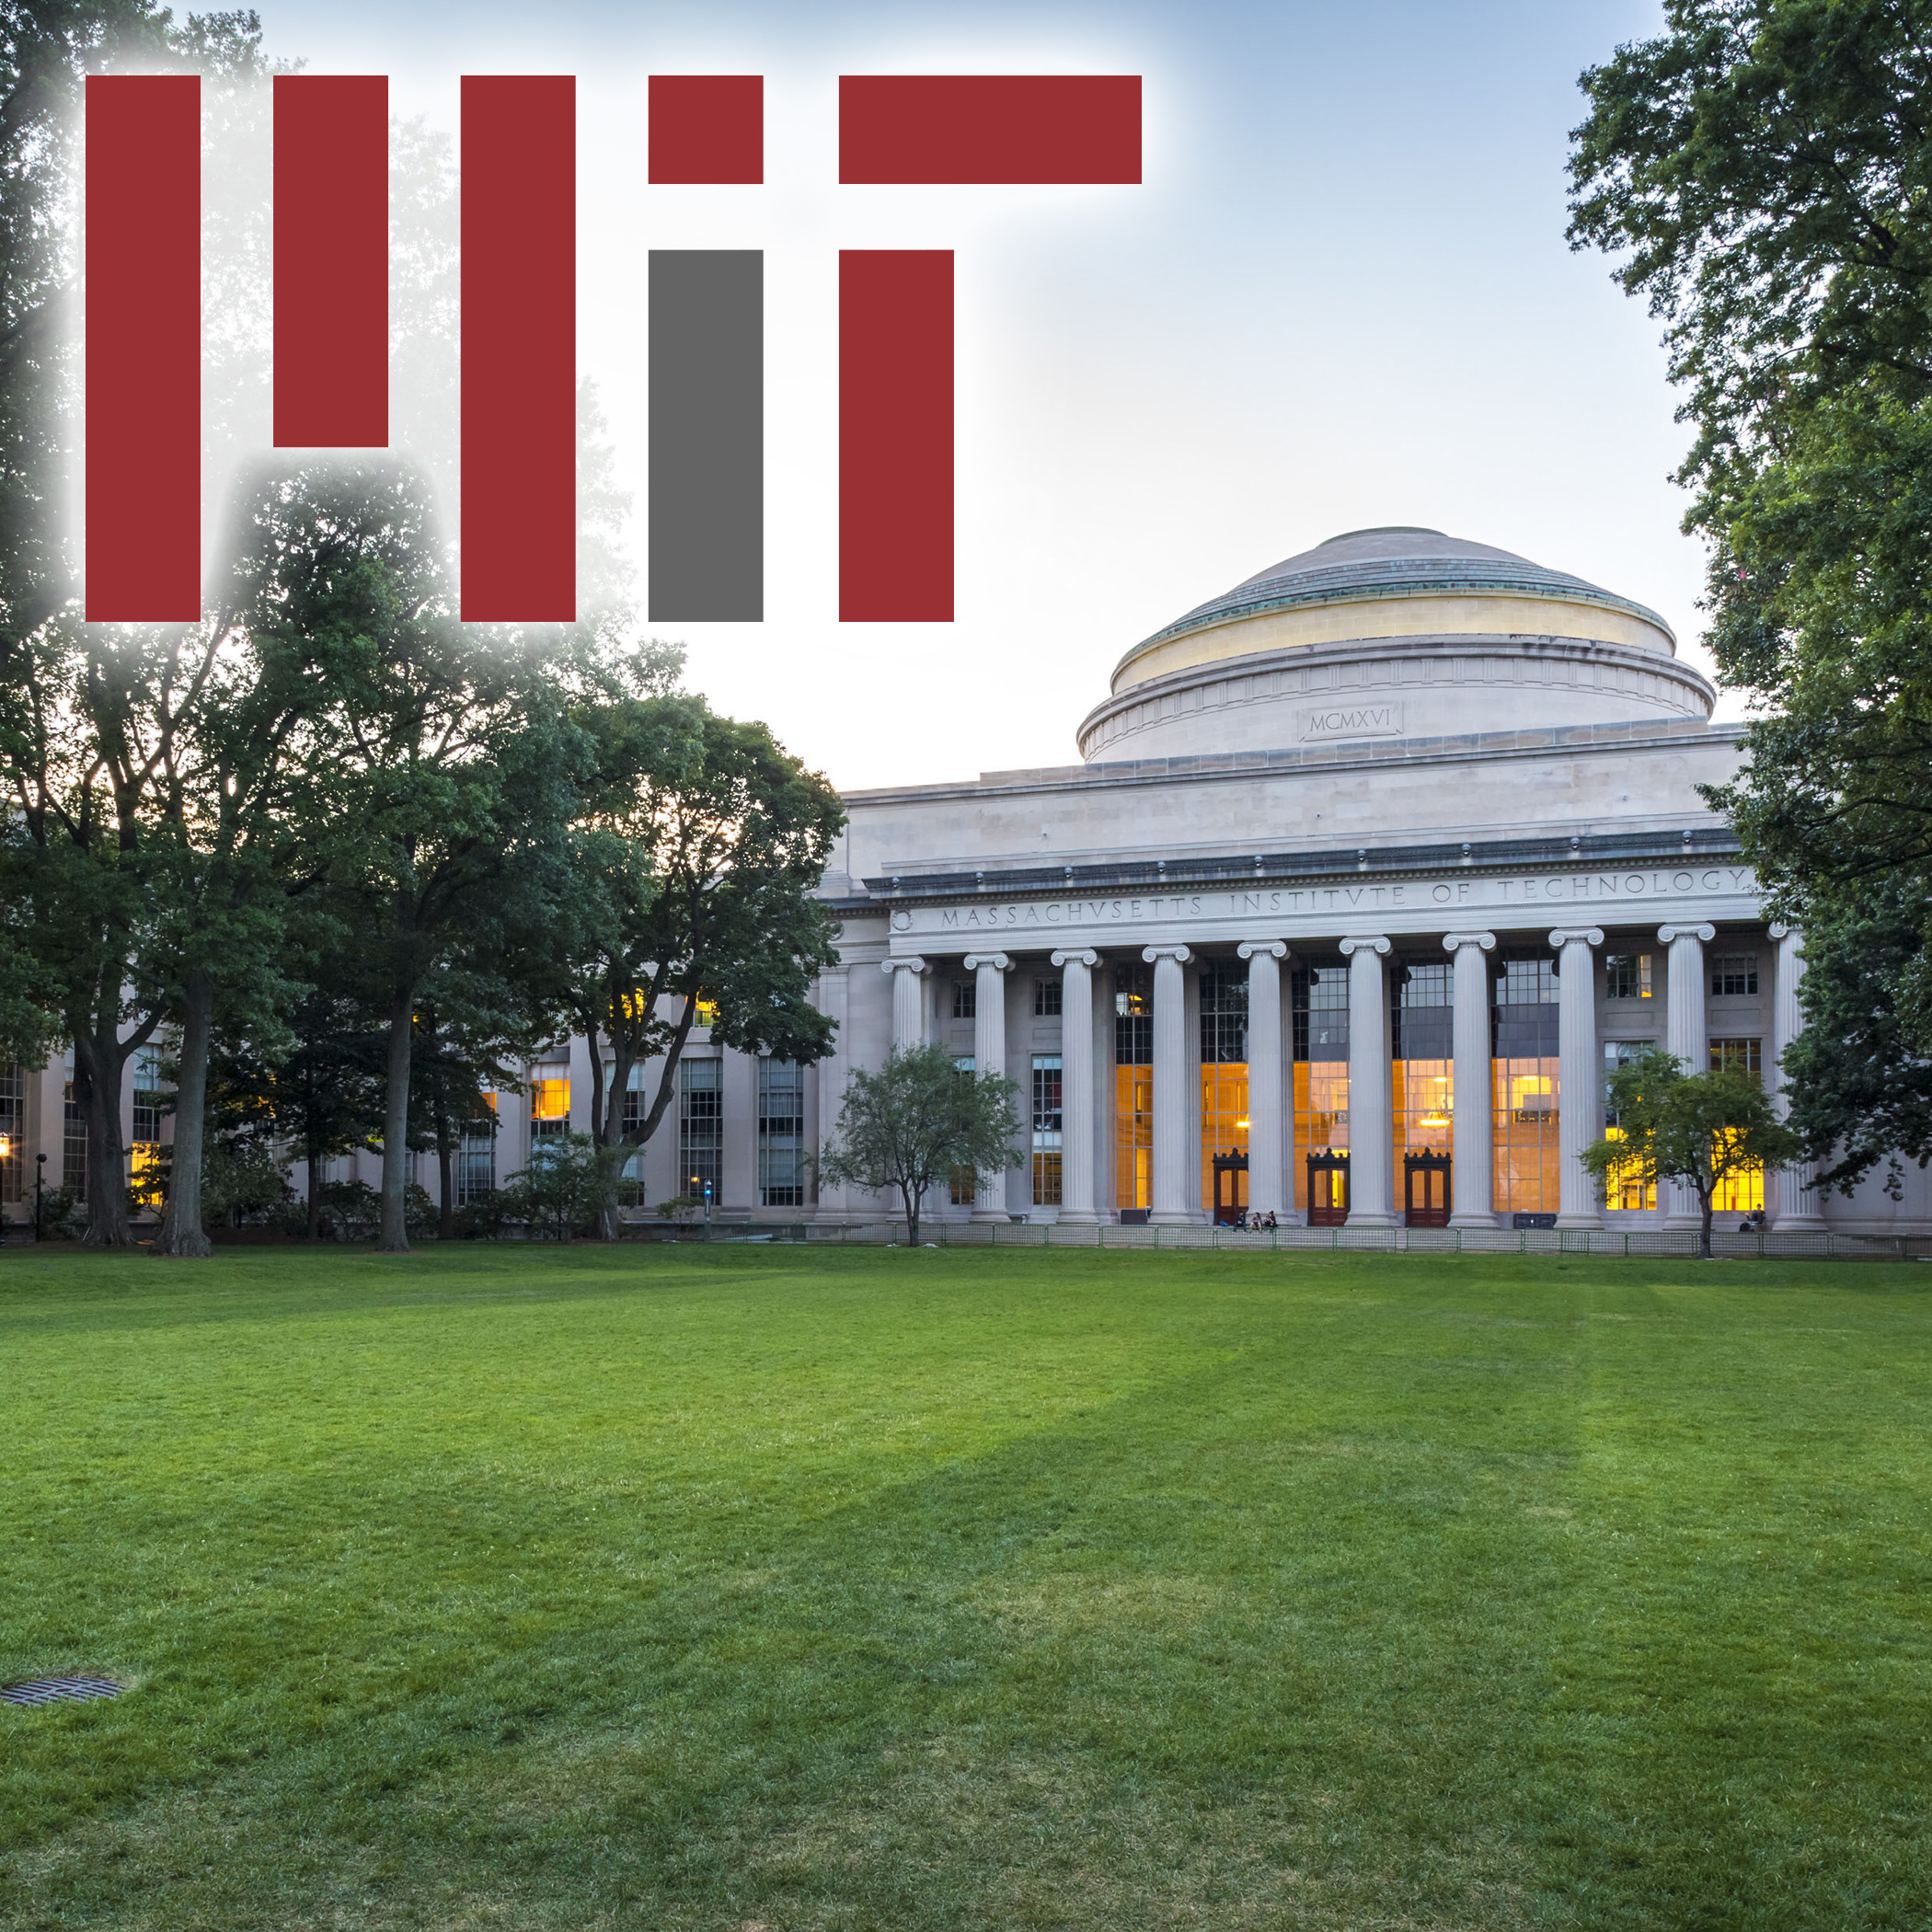 The Massachusetts Institute of Technology -